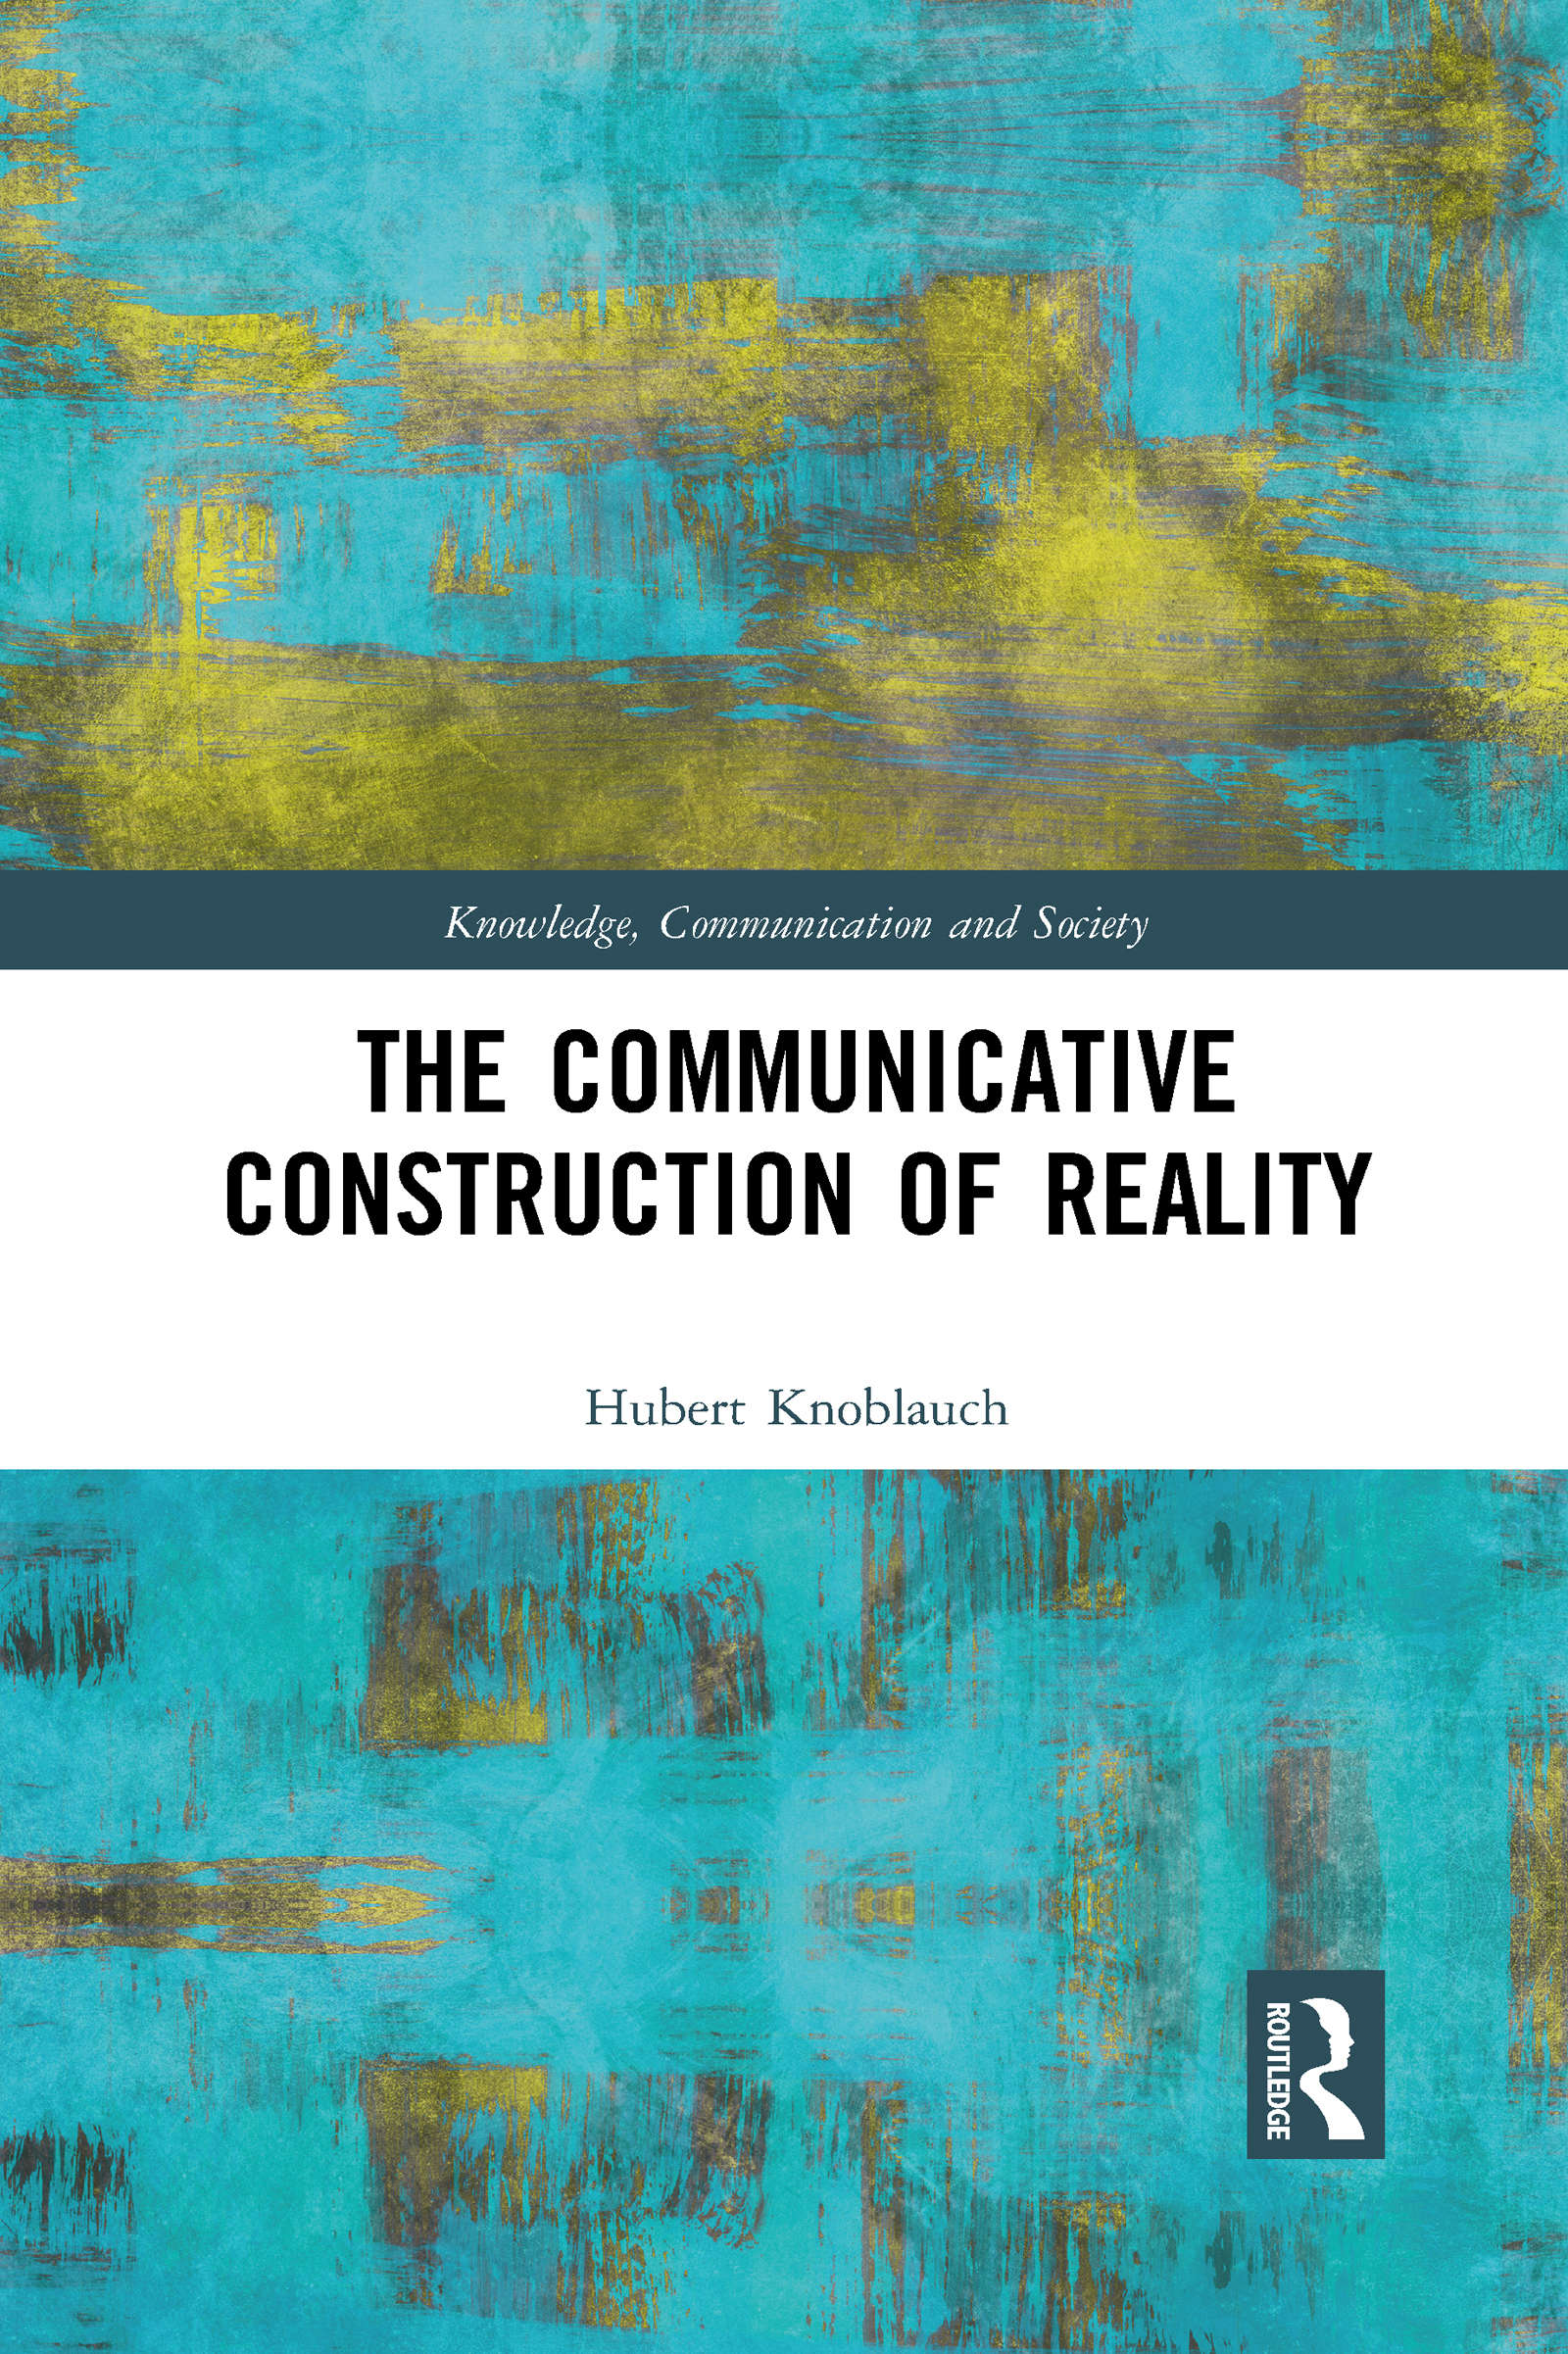 The Communicative Construction of Reality